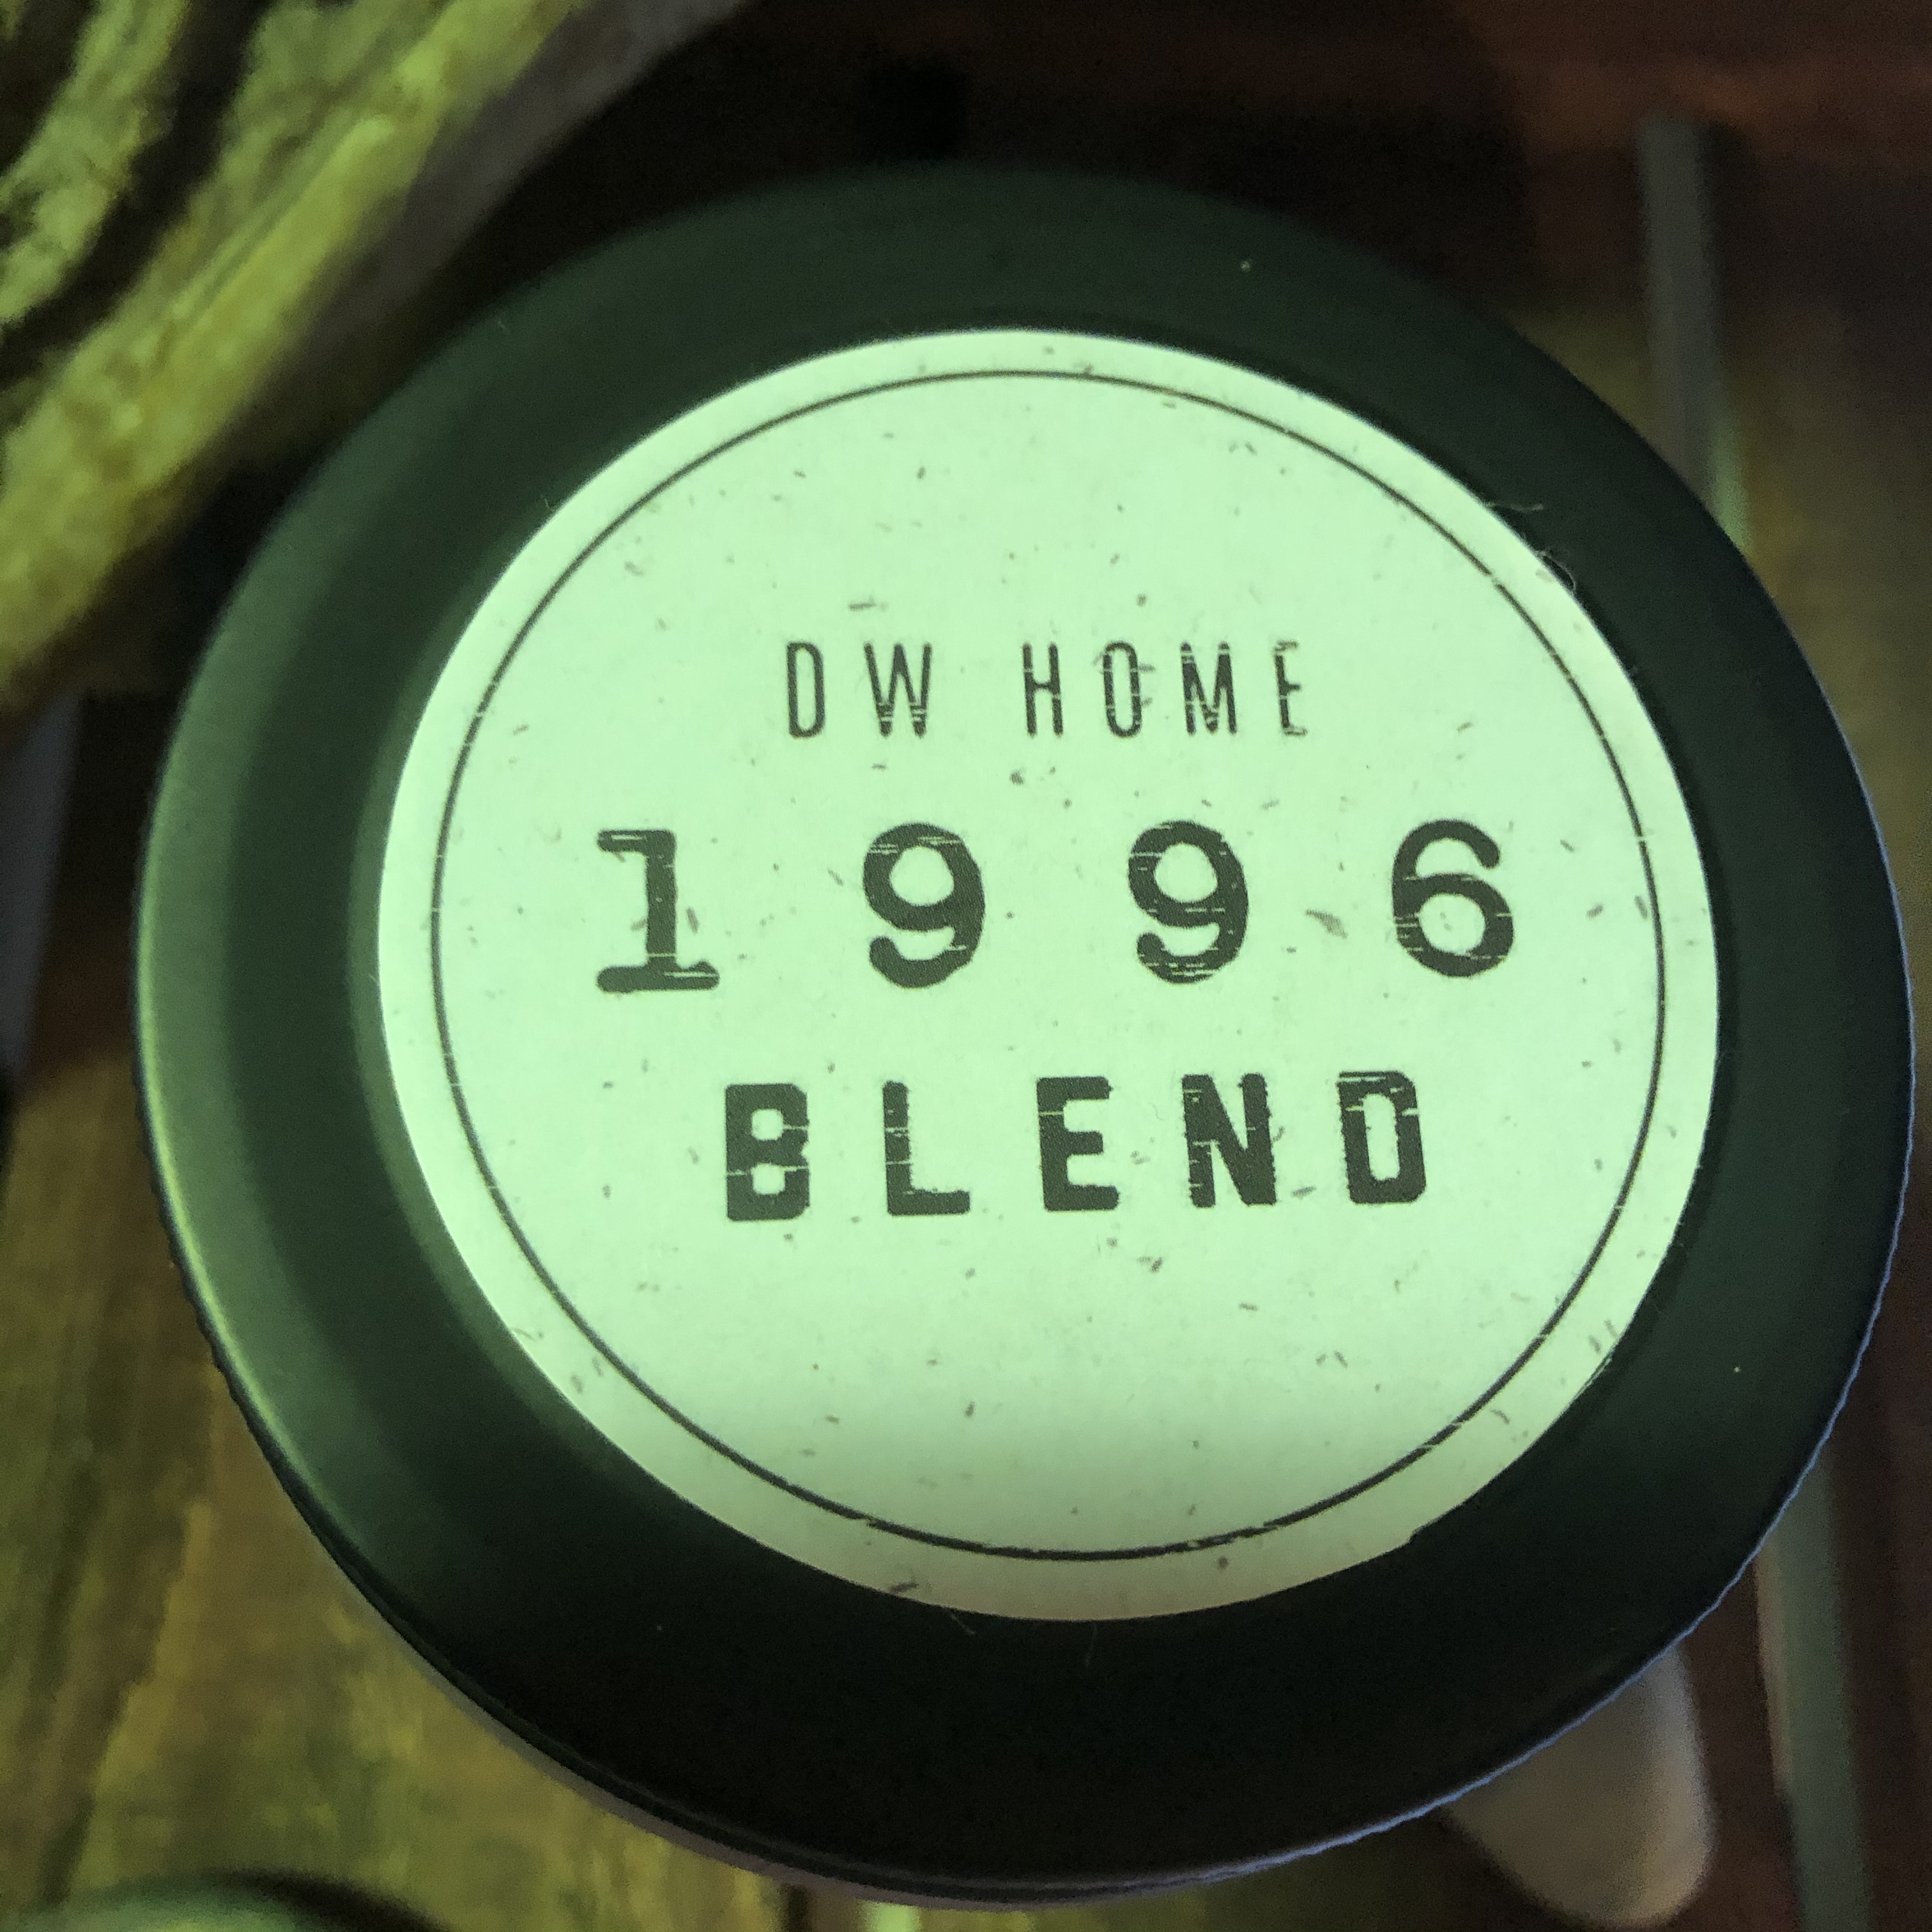 DW Home Candles 1996 BLEND 【AMBER ROSEWOOD BLEND】スパイシーなローズウッドのアロマキャンドル